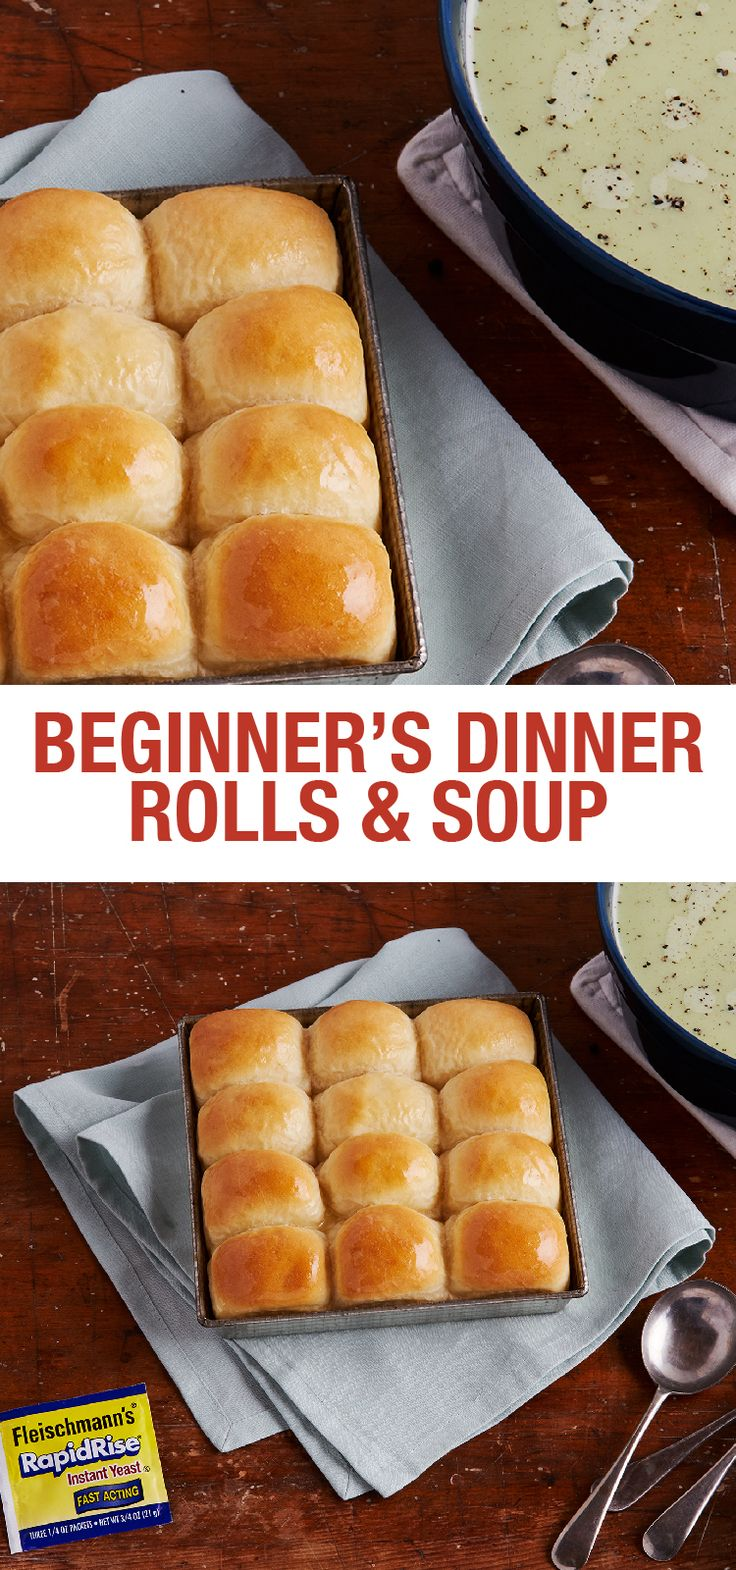 Nothing beats the smell of fresh-baked bread and there's no shortage of ways to serve homemade Dinner Rolls. Pair them with your favorite warm, savory soup the first night and serve them stuffed with your favorite fillings as sliders the next night. The dough can be prepped in advance and refrigerated up to 24 hours, so it's an easy recipe to integrate into your weekly meal plan.